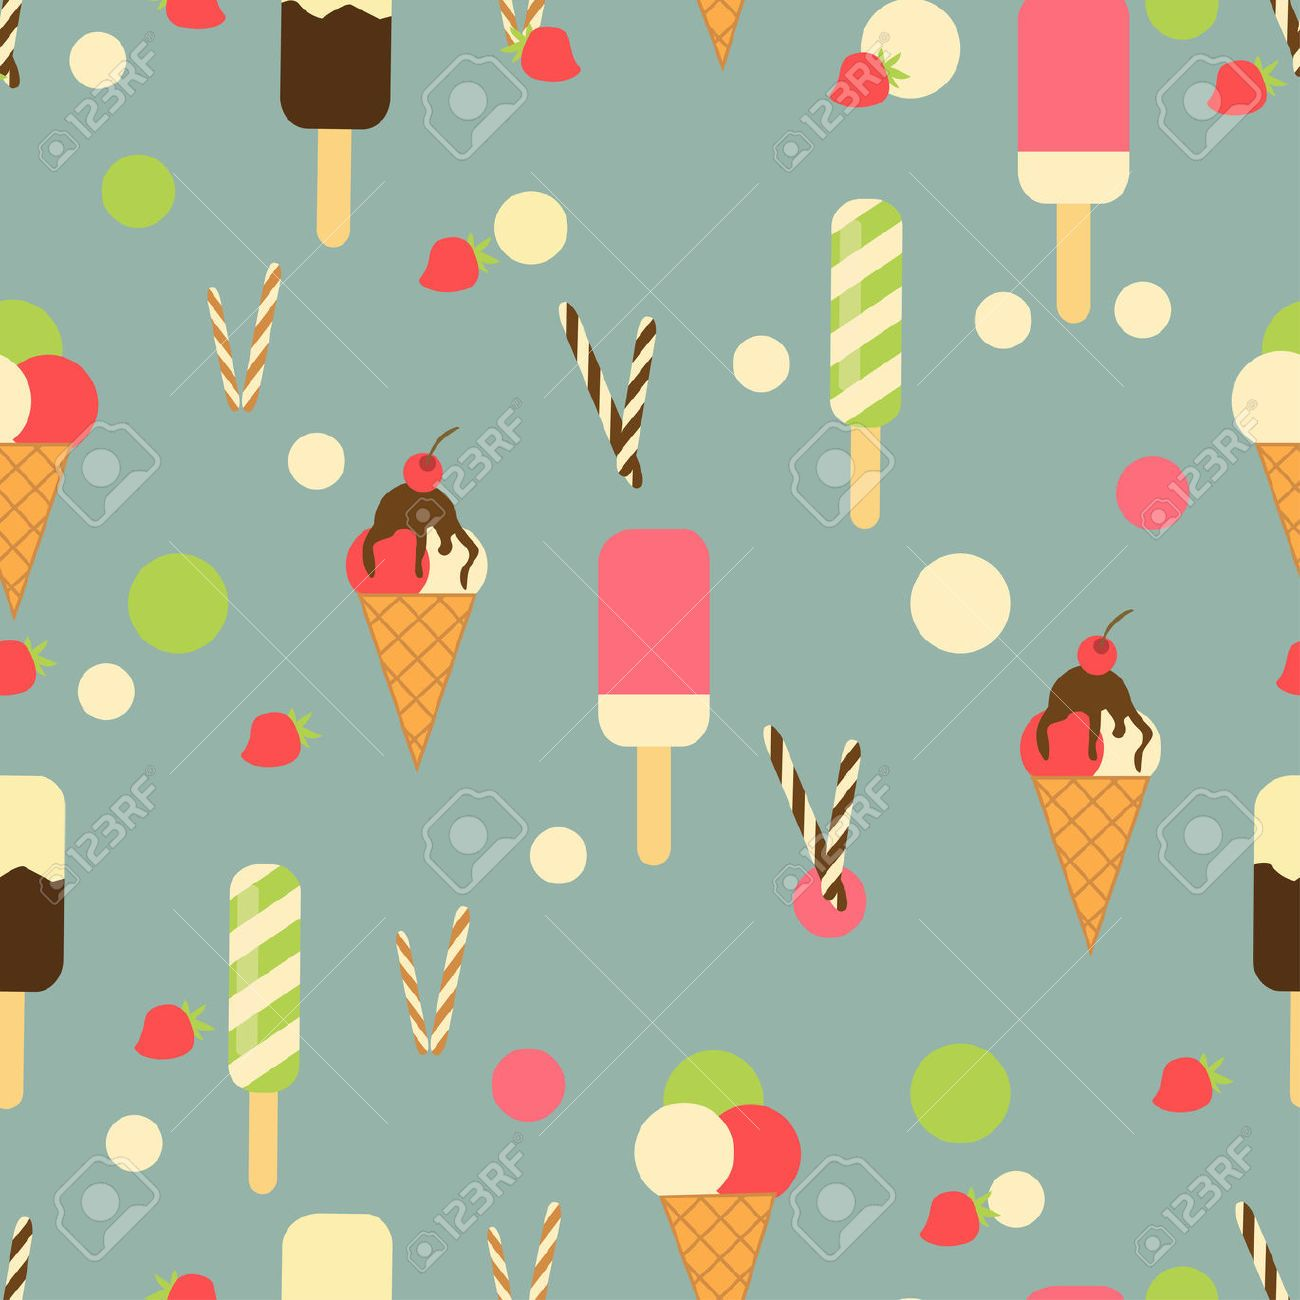 Ice Cream Wallpapers For Desktop: Seamless Texture Of Ice Cream Dessert In A Glass Lk Shake